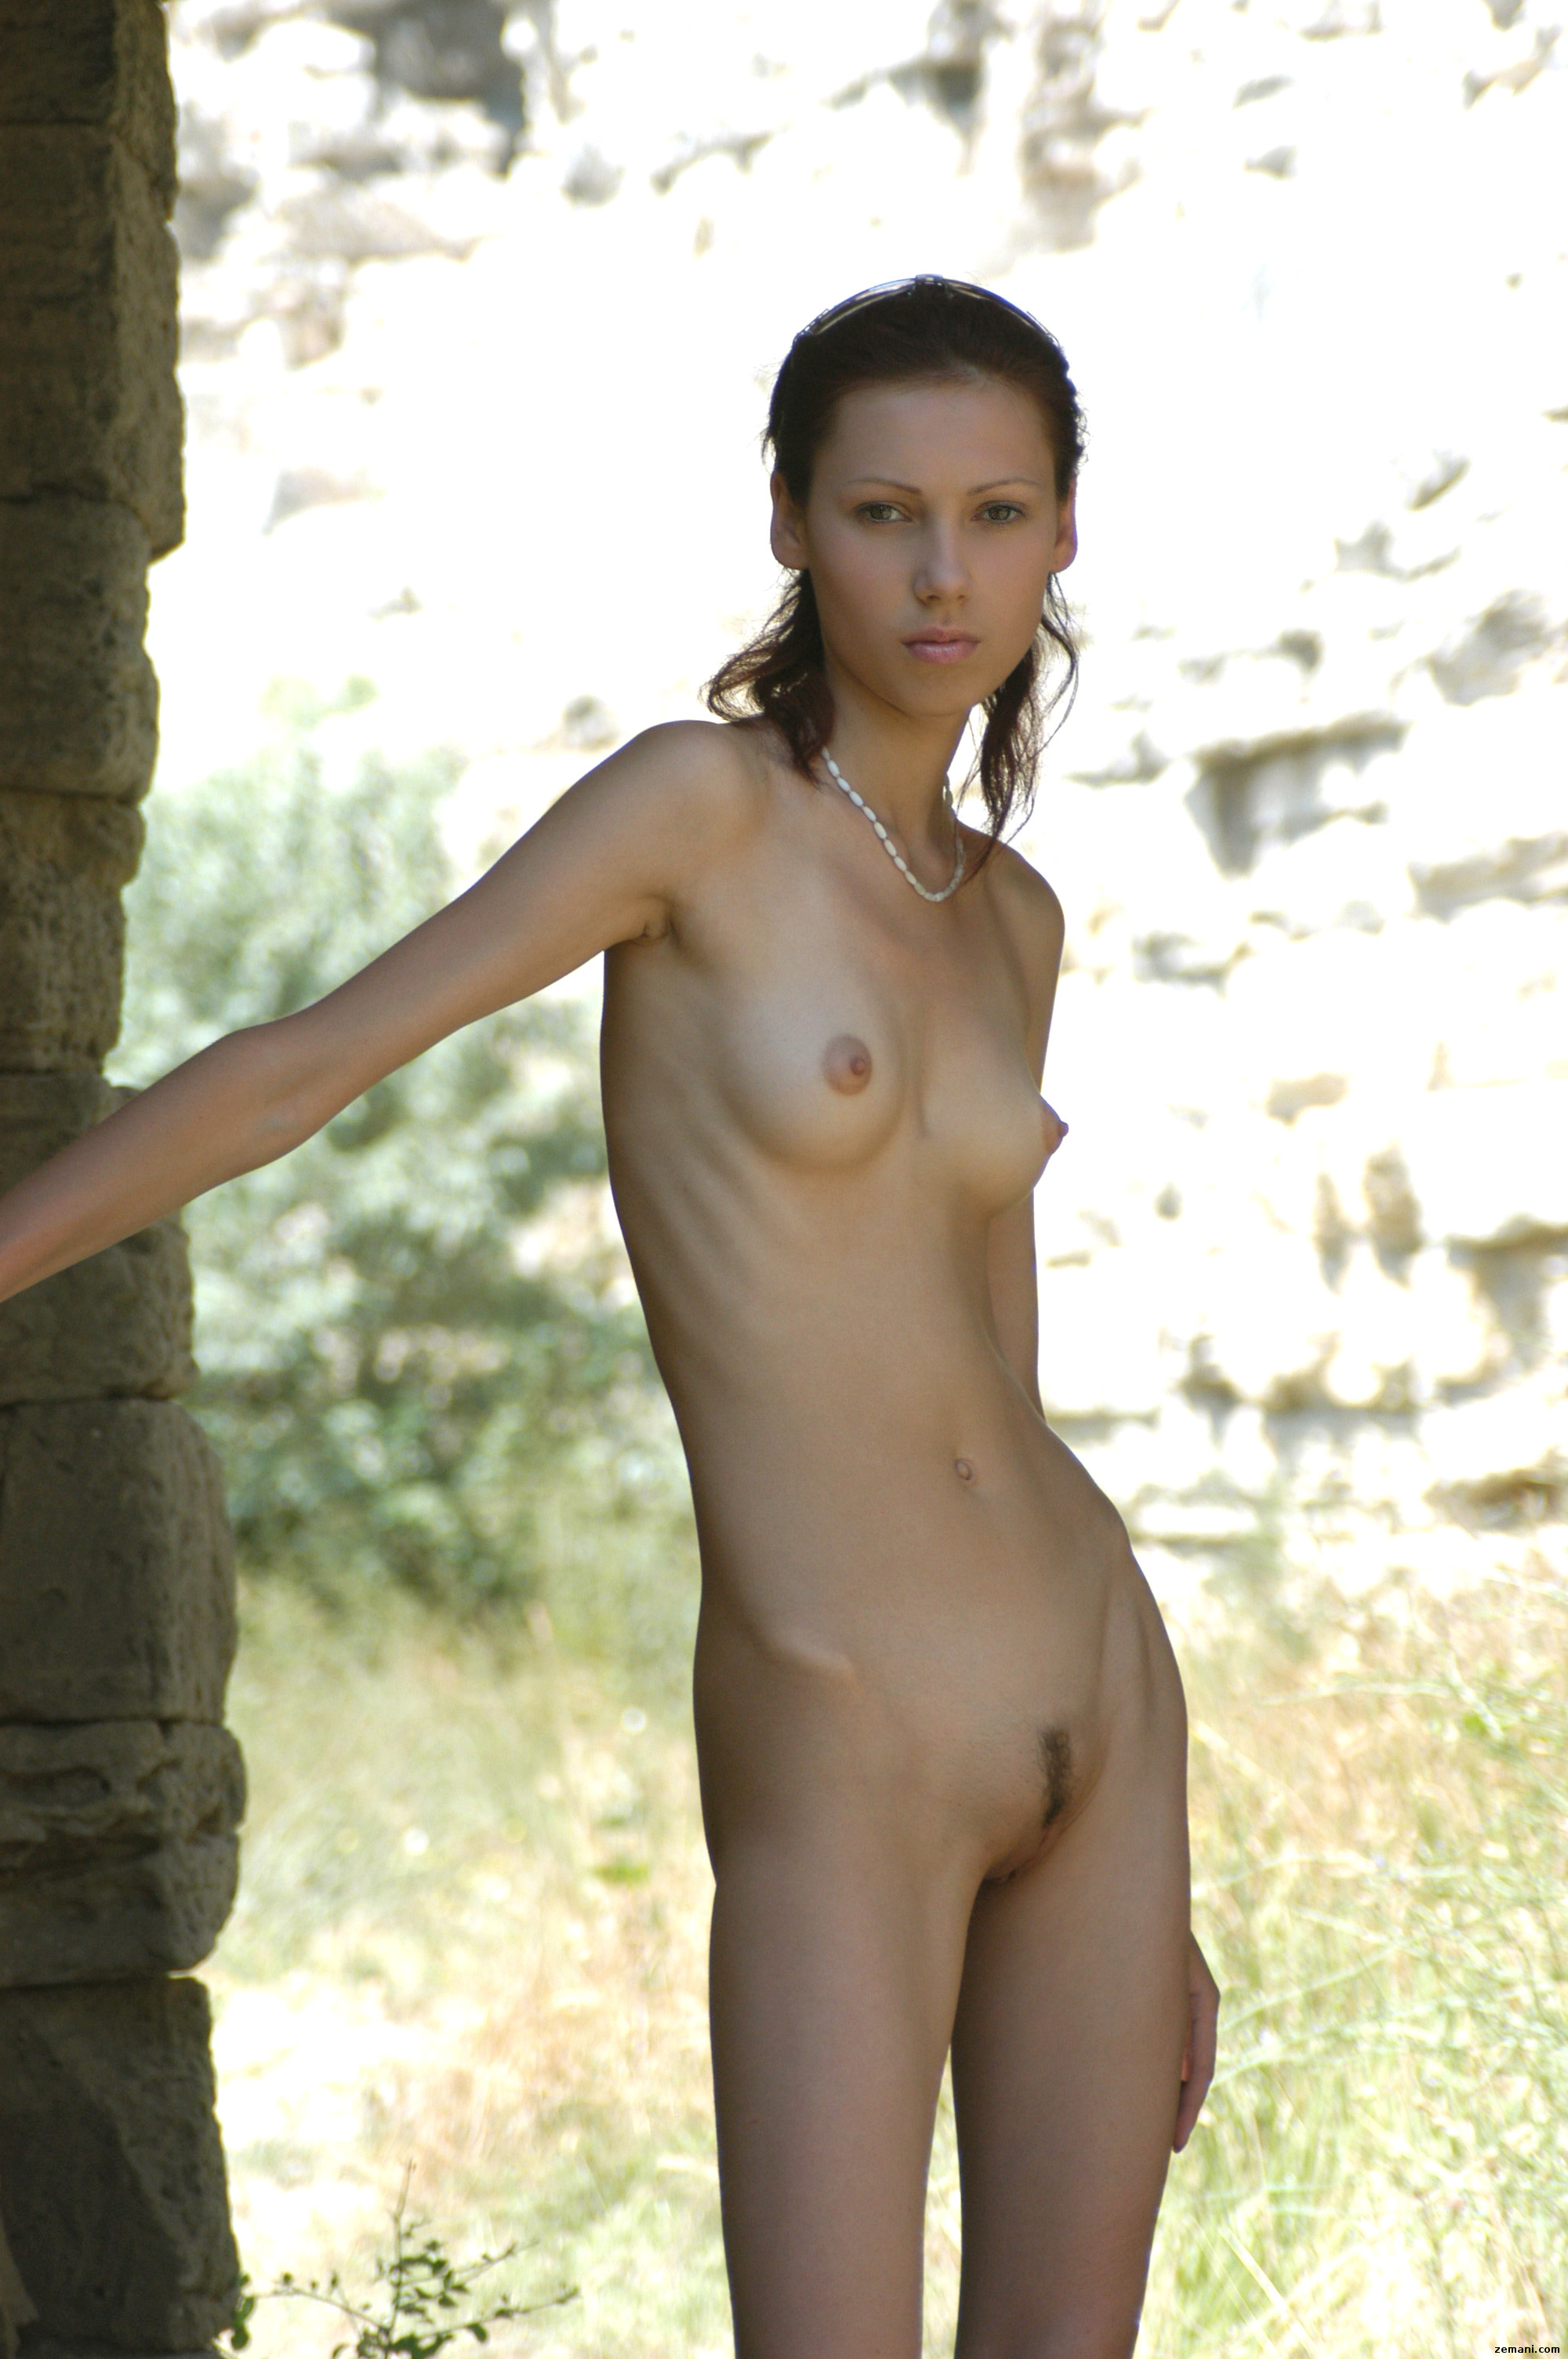 Skins naked ladies nude scenes